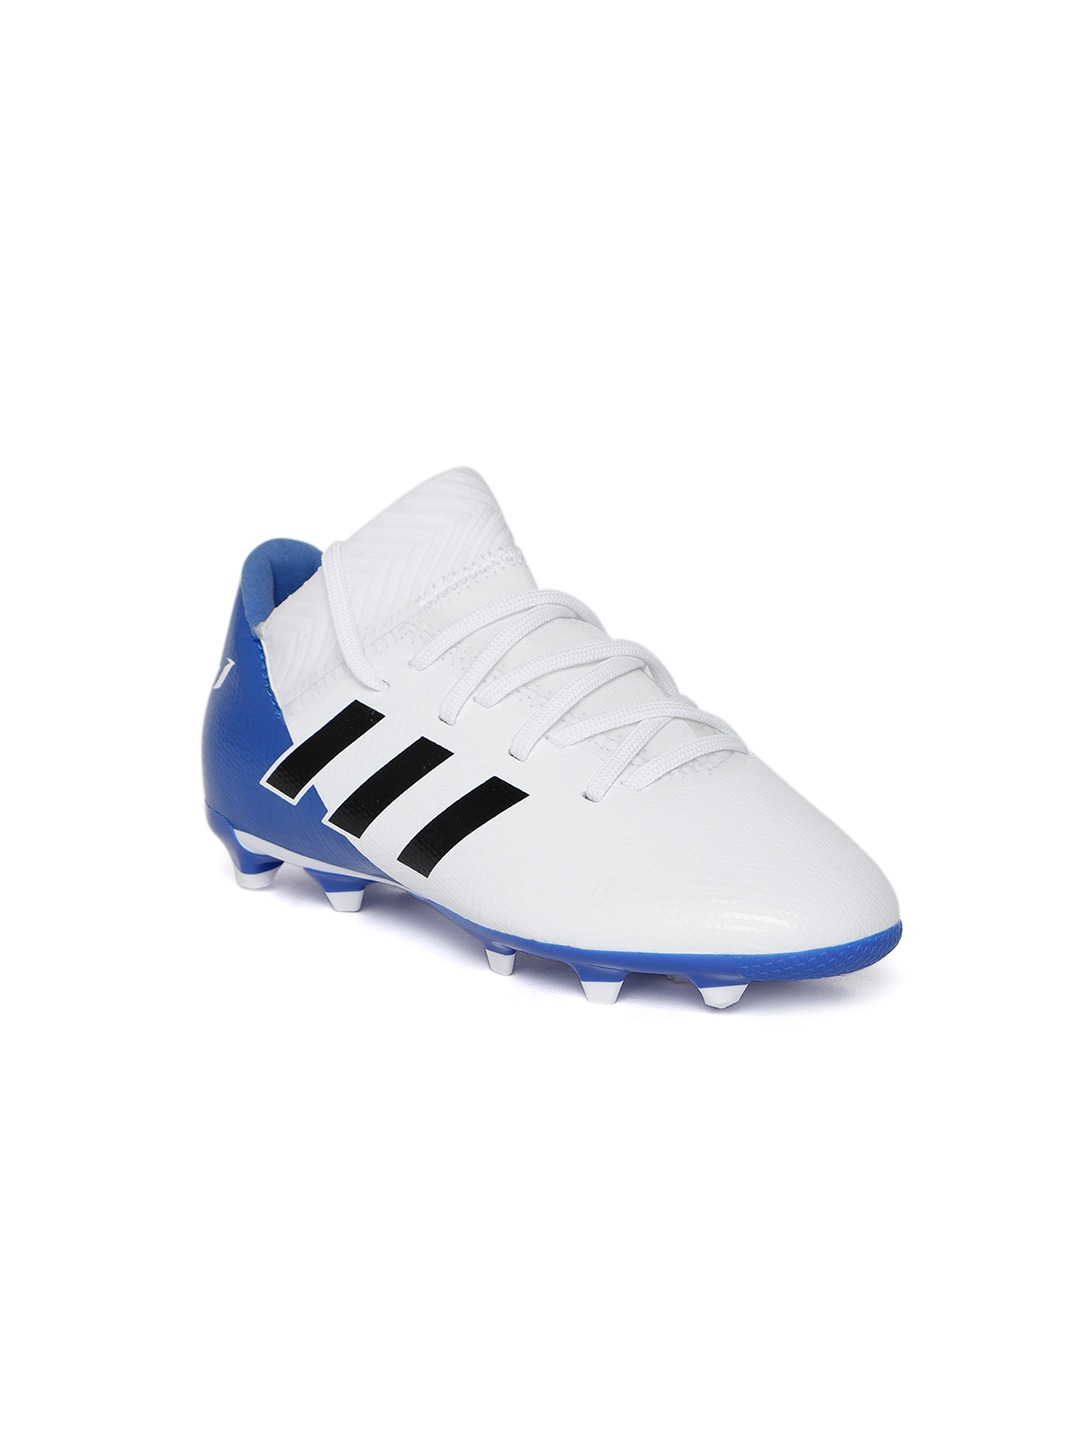 fdcb85bfa Adidas Messi - Buy Adidas Messi online in India